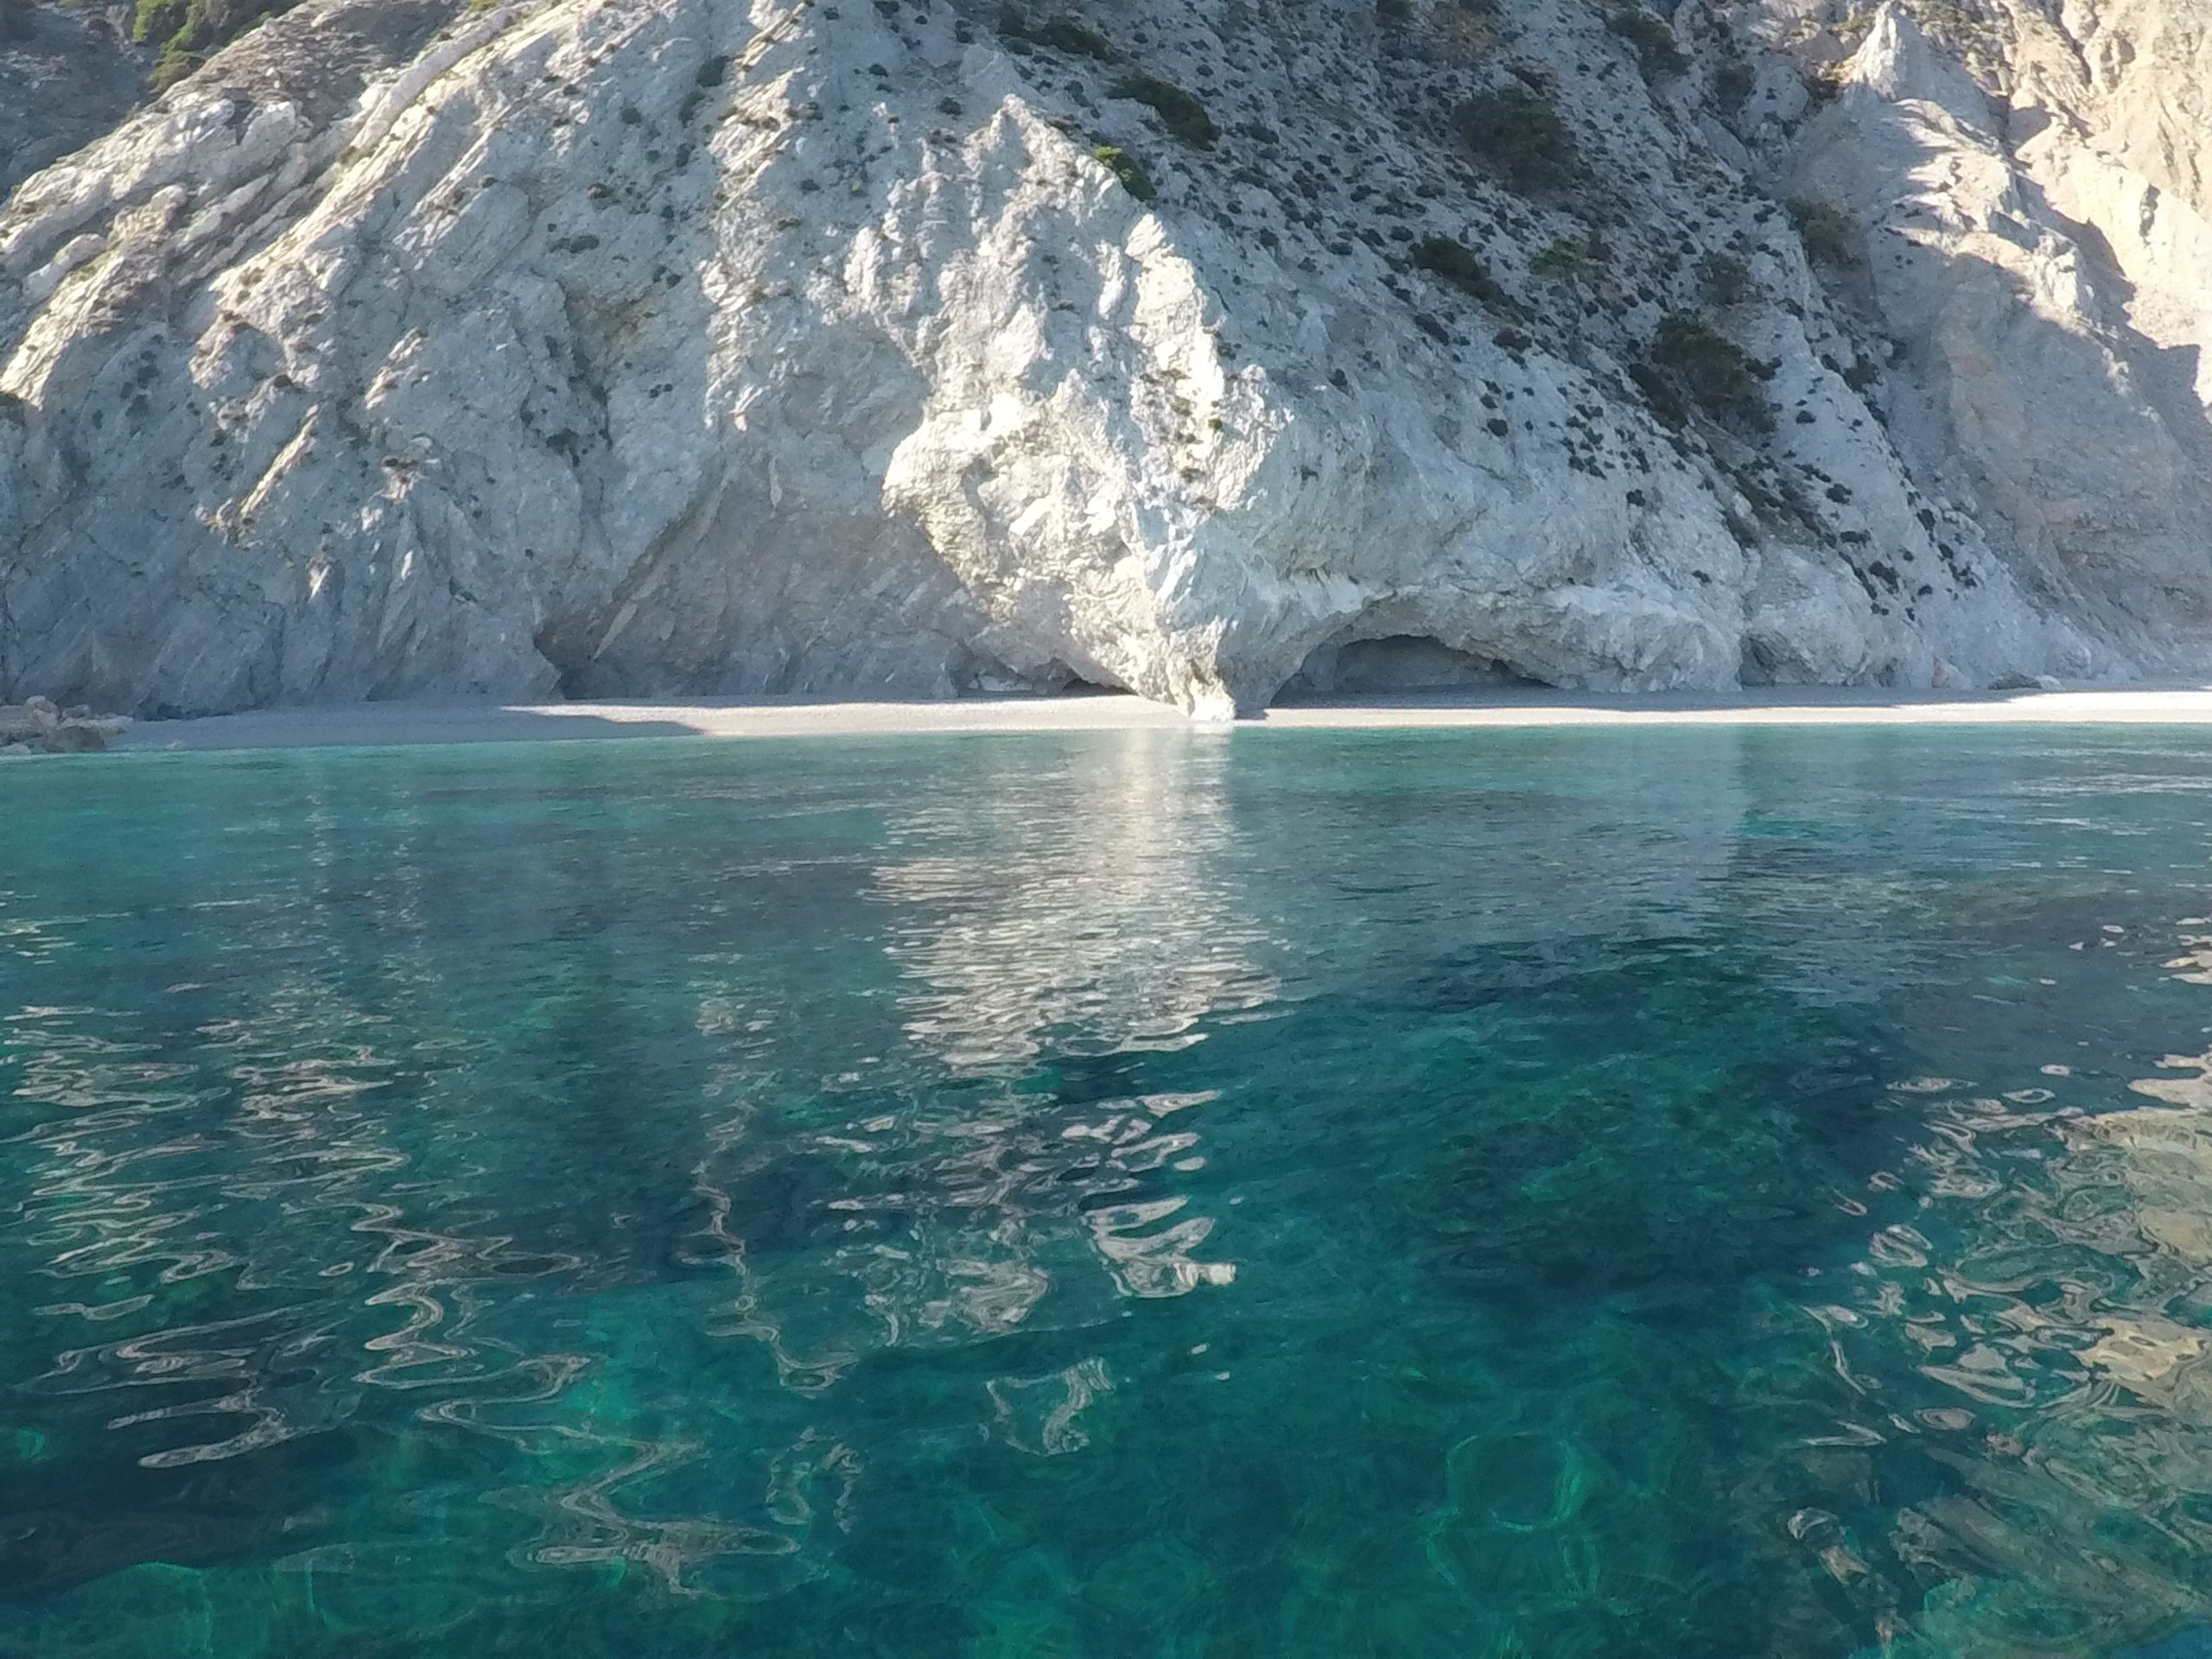 lalaria,lalaria beach,skiathos lalaria,skiathos rent boats,skiathos rental boats,skiathos boats for hire,skiathos boats,skiathos boat hire,skiathos,greece,skiathos boat hire,boat hire,skiathos boat trips,skiathos trips,boat trips.skiathos activities,activities skiathos